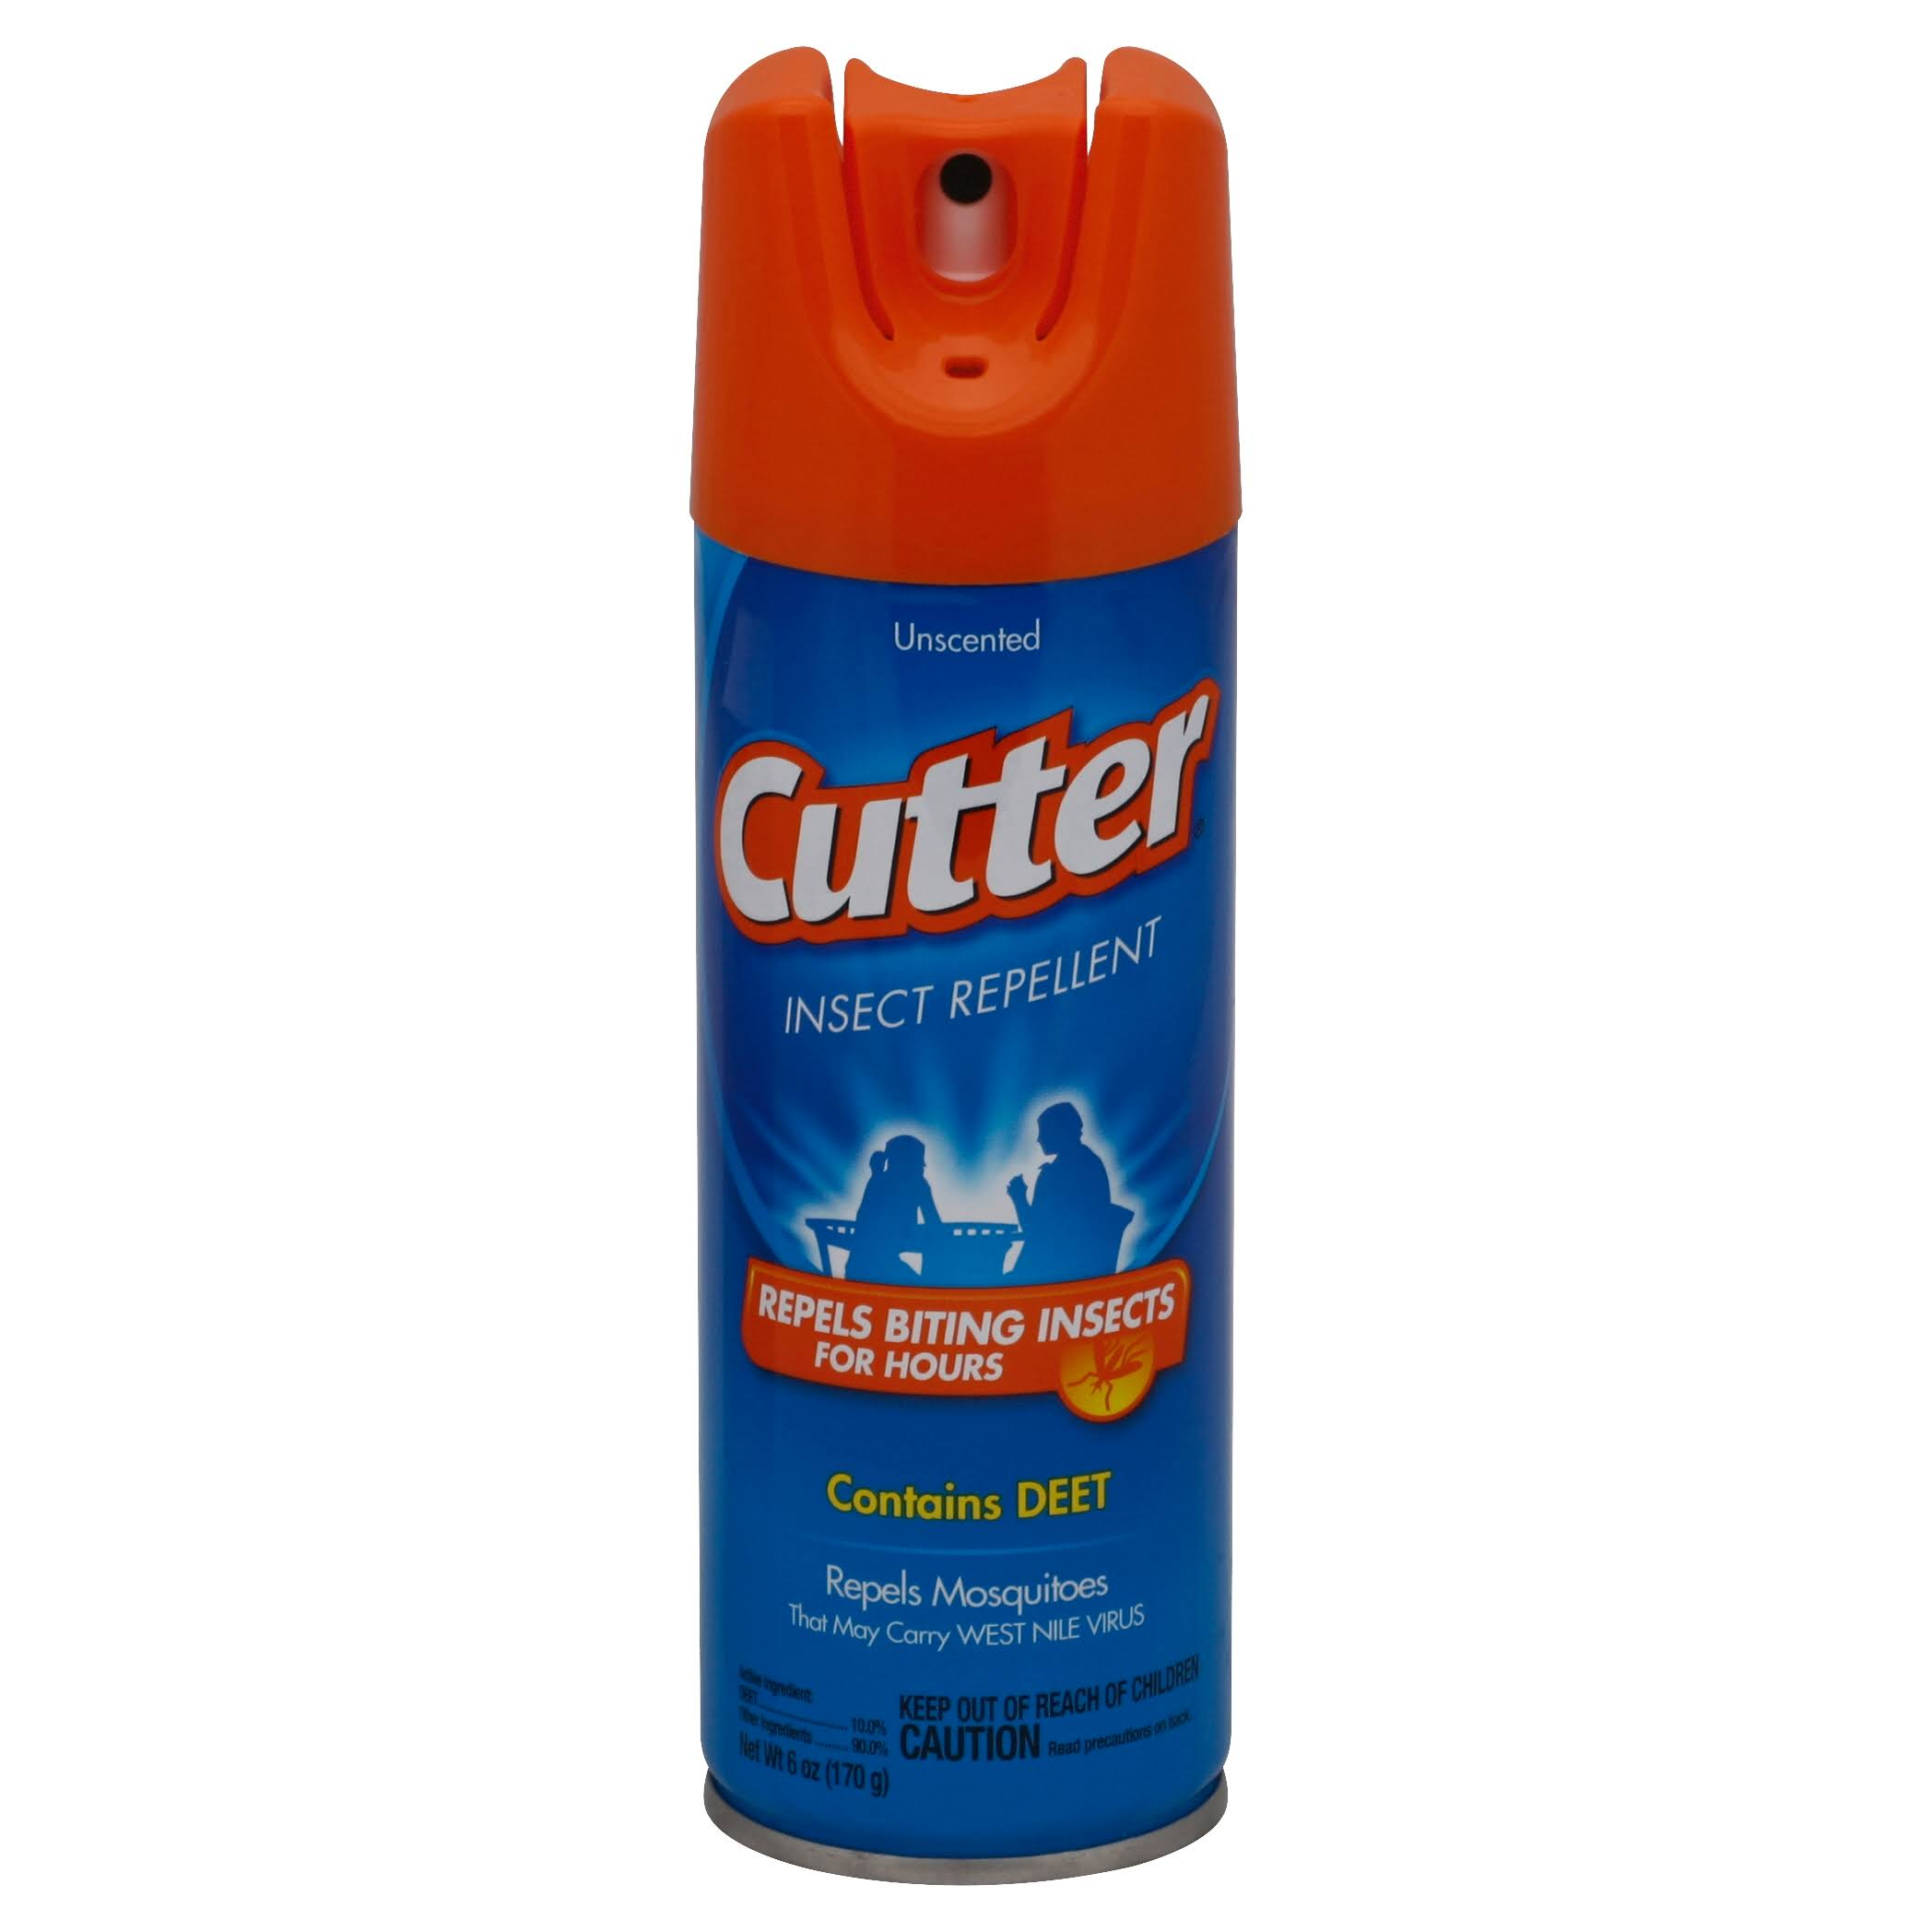 Cutter Deet Unscented Mosquito Repellent - 6oz